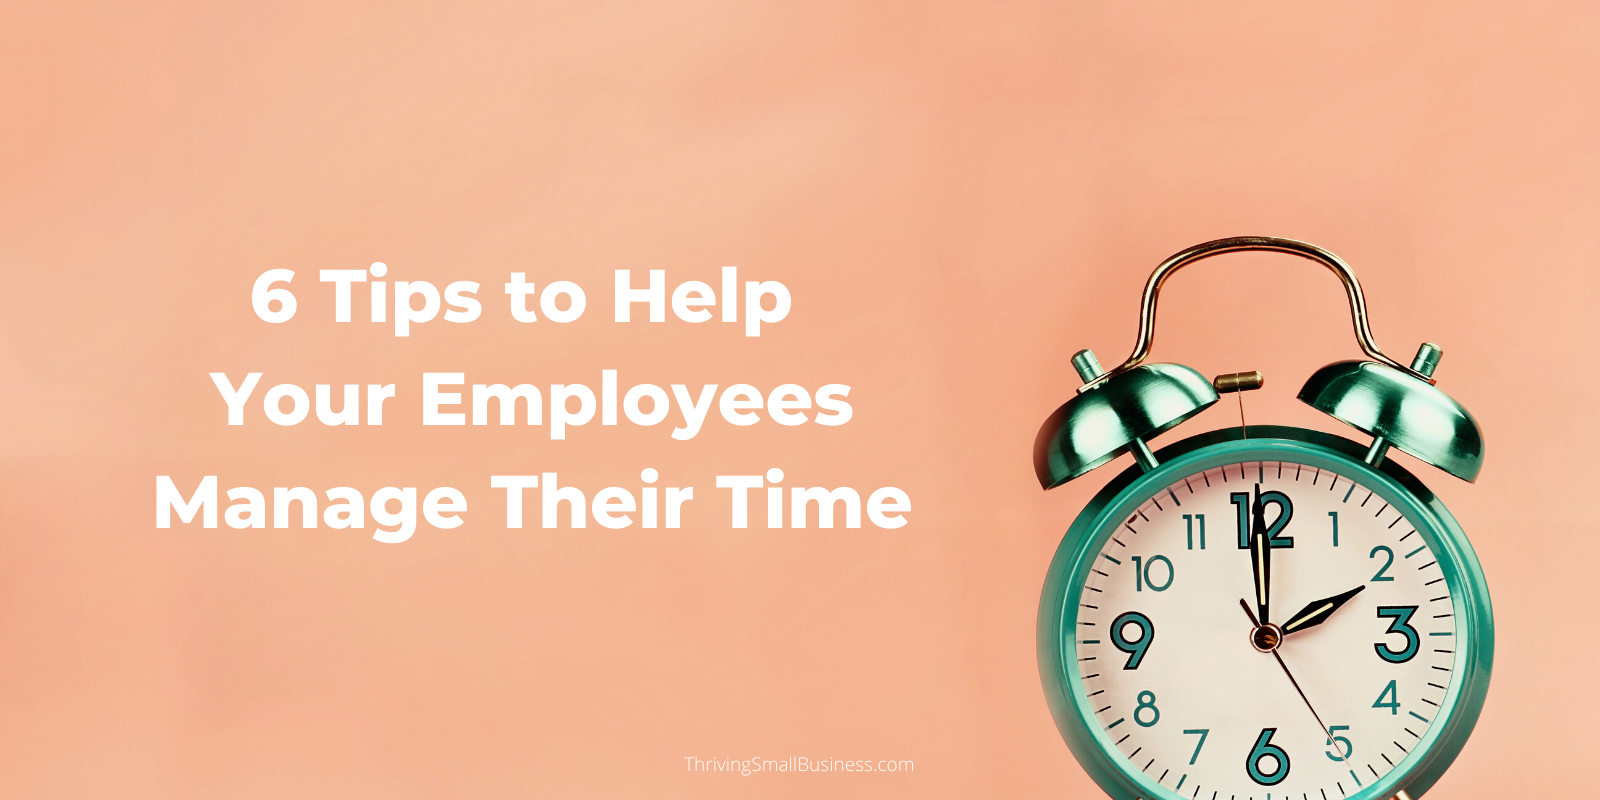 how to help employees manage their time at work